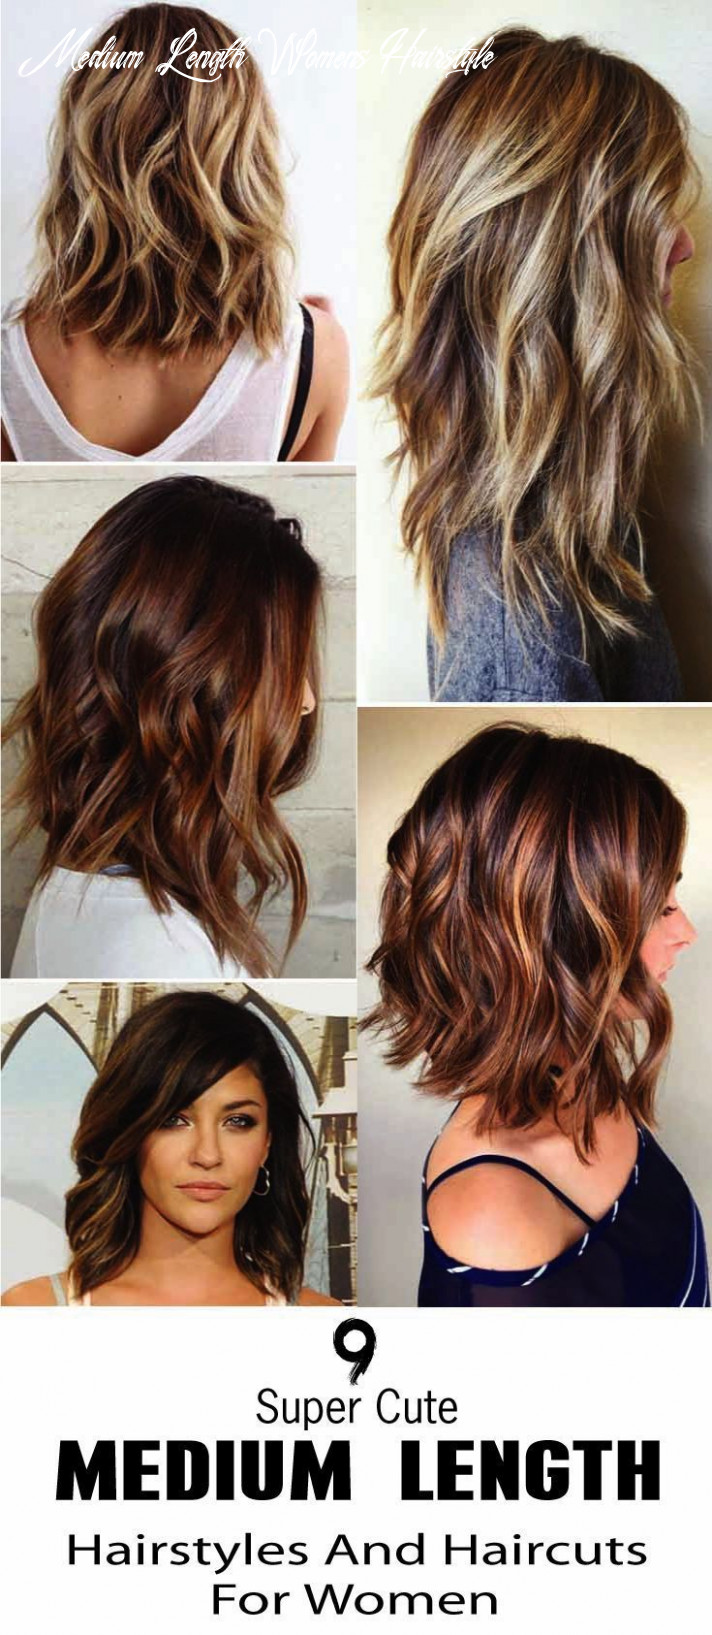 Pin on hairstyle medium length womens hairstyle